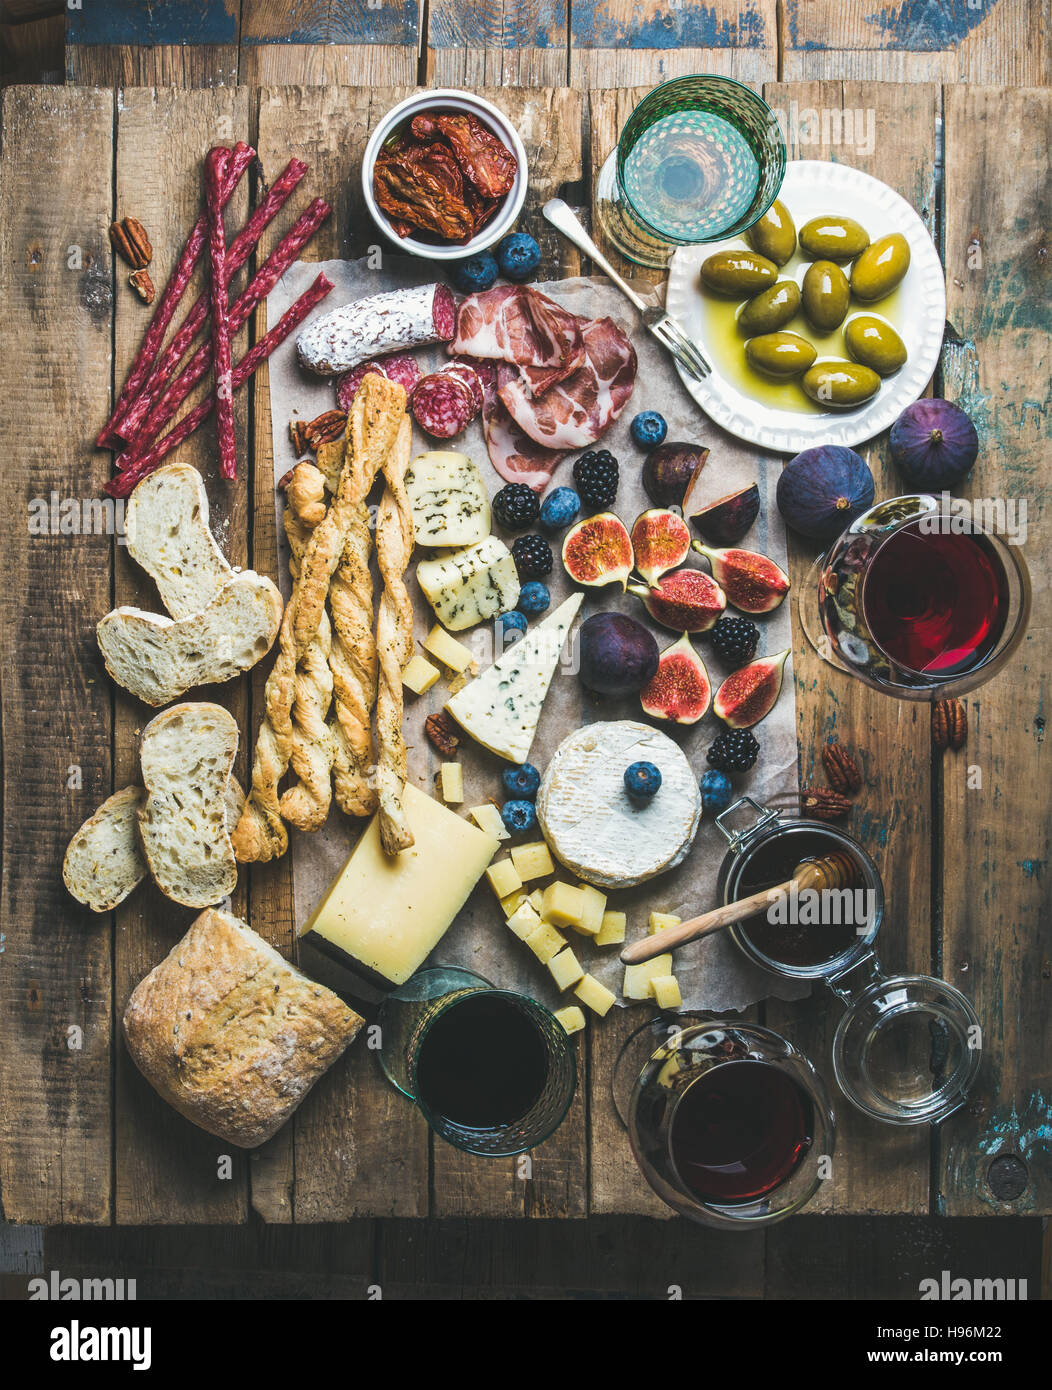 Wine and snack set with wines, meat, bread, olives, berries - Stock Image